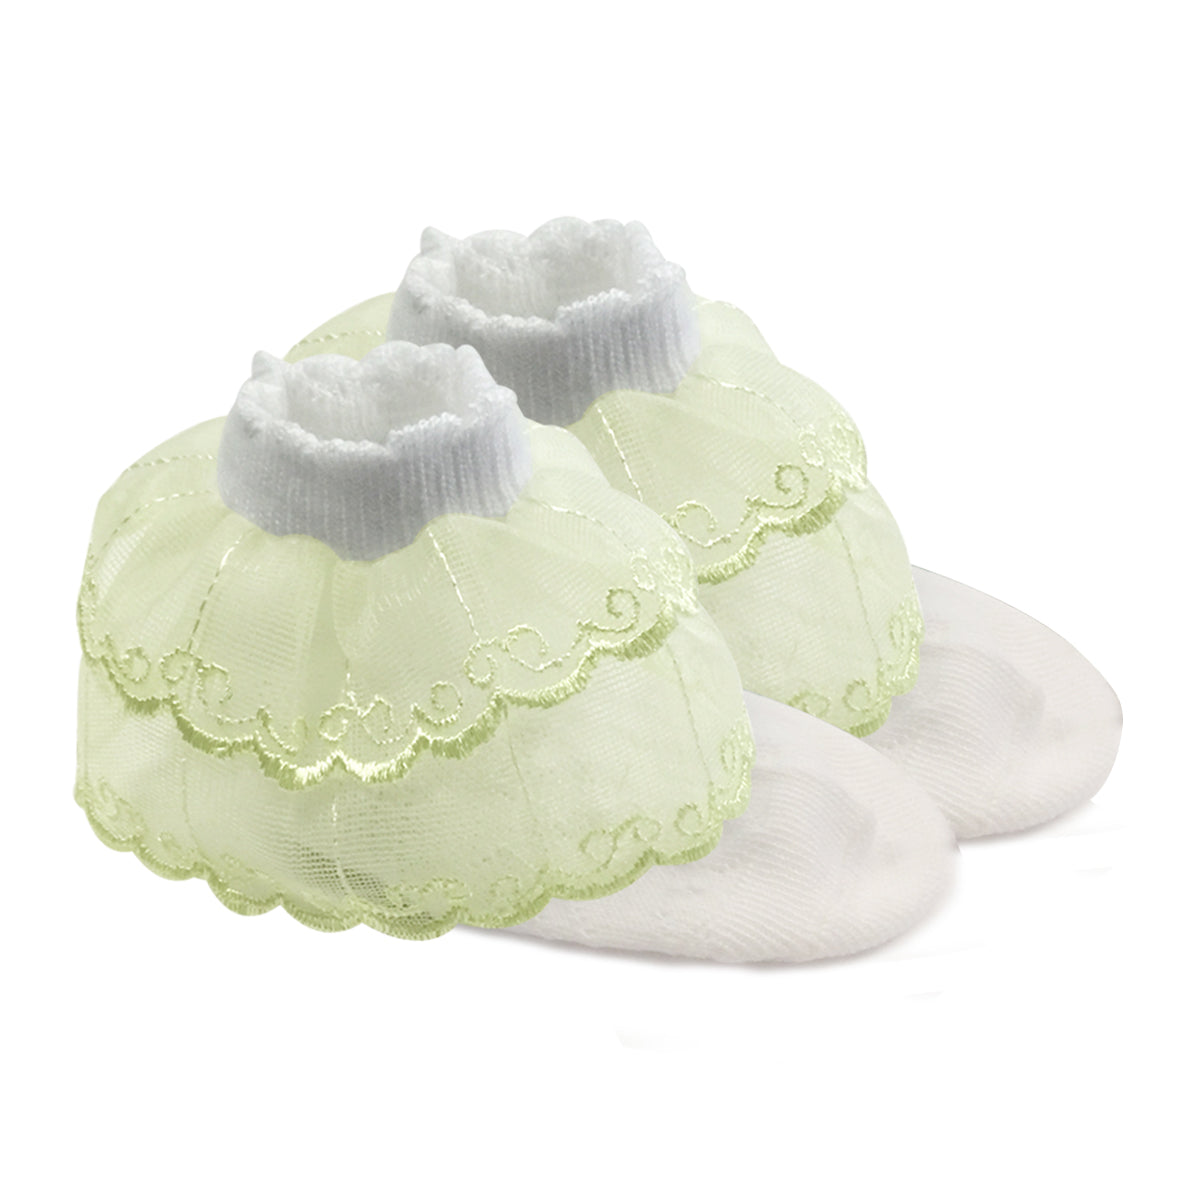 Wrapables Lil Miss Emily Double Layer Lace Ruffle Socks Set of 2, Green